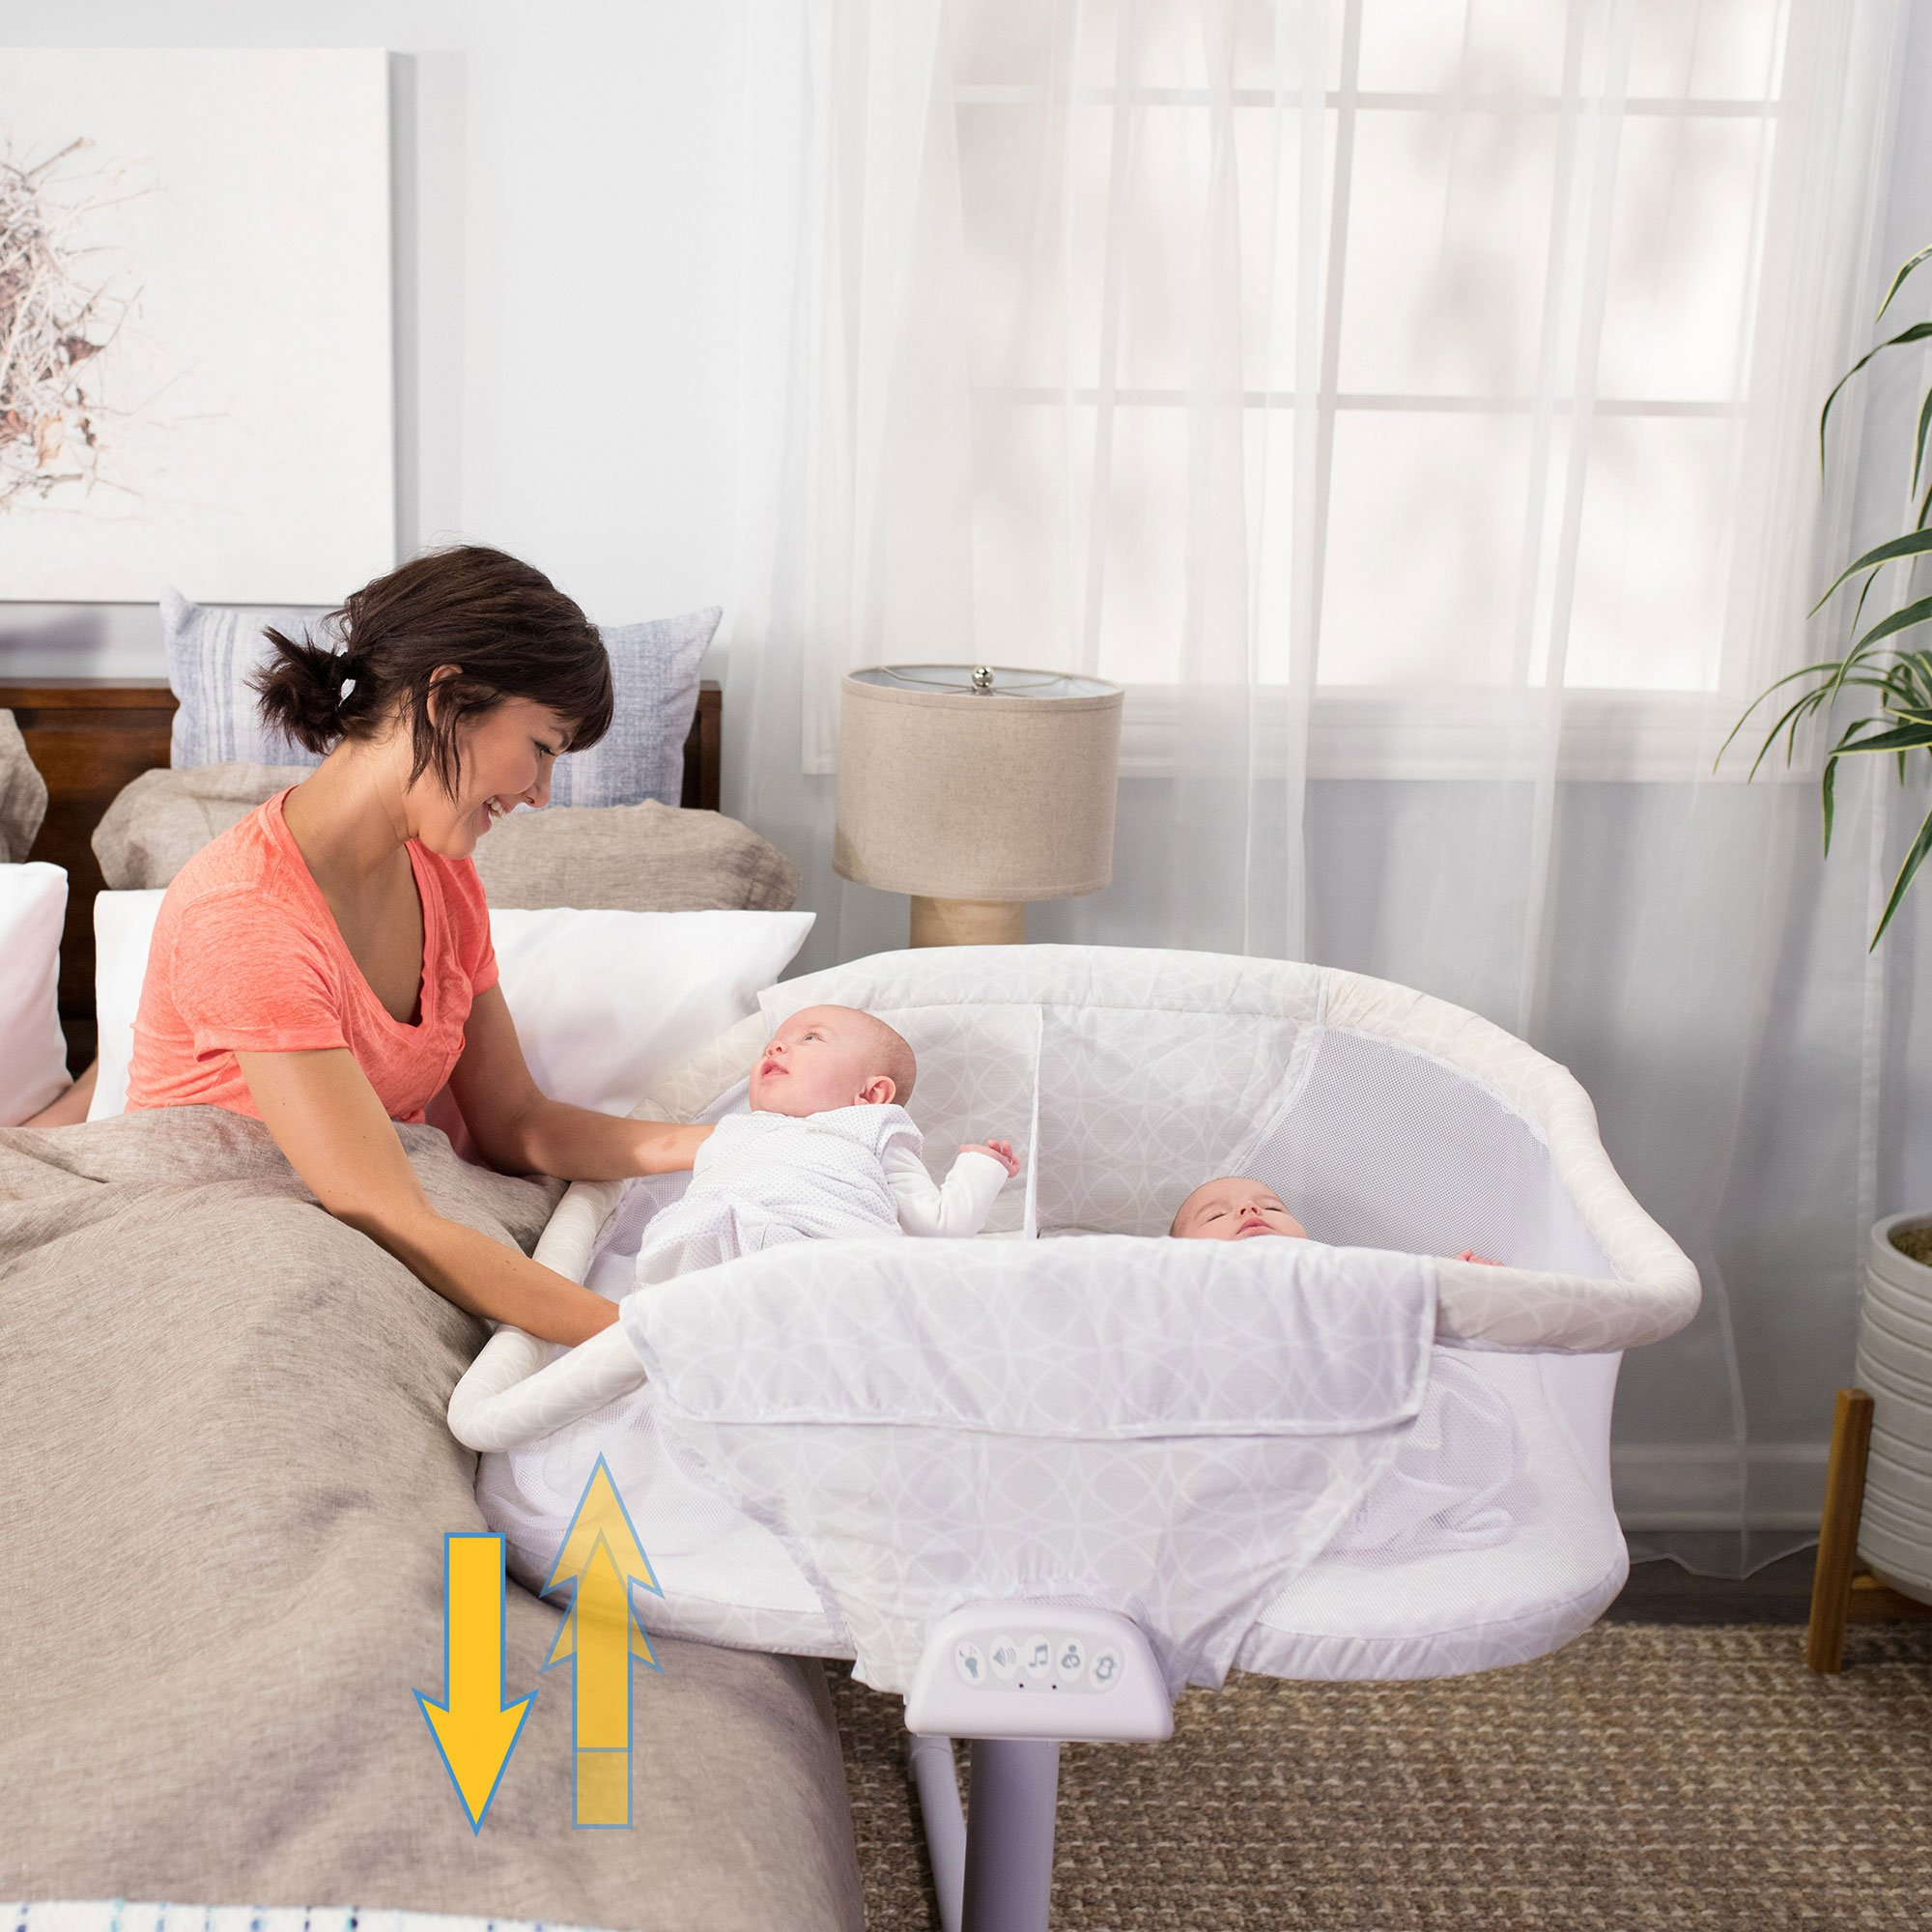 HALO Bassinest Twin Sleeper Double Bassinet – Premiere Series, Sand Circle by Halo (Image #4)